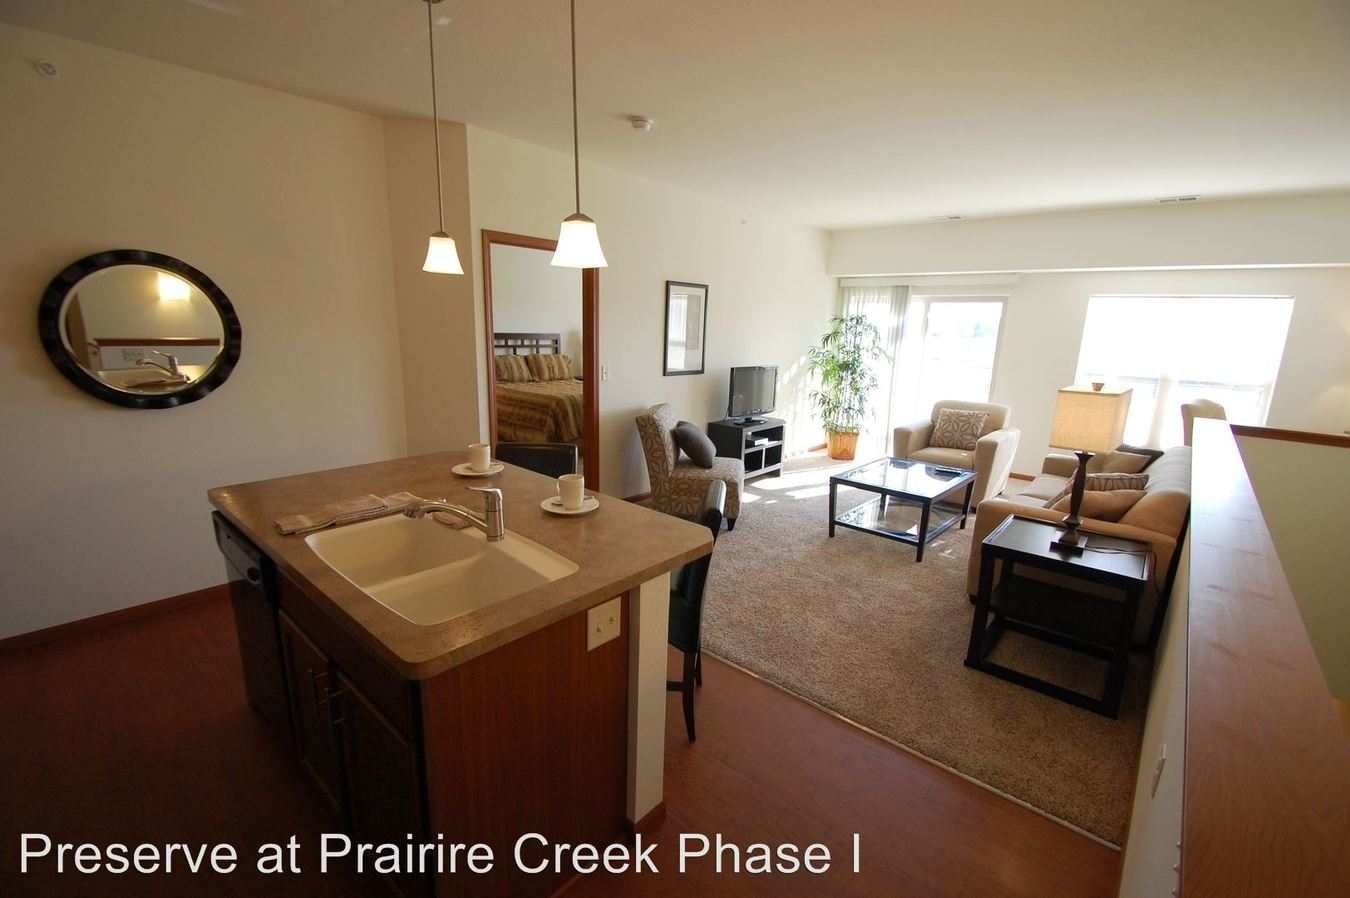 2 Bedrooms 2 Bathrooms Apartment for rent at 1225 Prairie Creek Blvd in Oconomowoc, WI